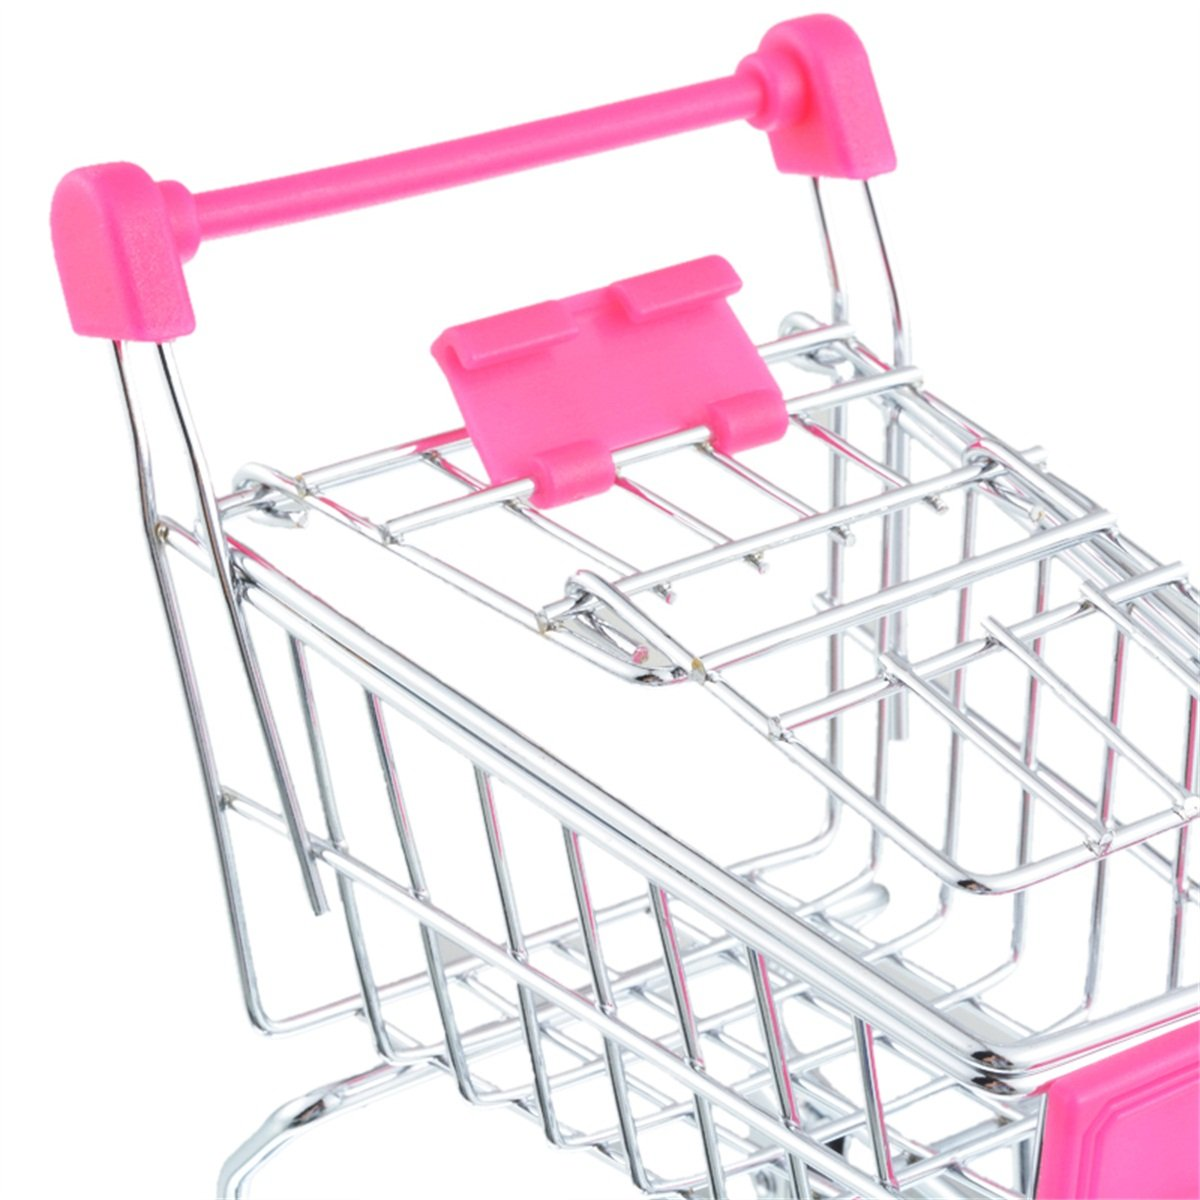 Amazon.com: Rose Red/ 11.5x8x12cm/ Shopping Cart Craft Decoration Trumpet Supermarket Trolley Metal Model Trolley Toy: Home & Kitchen